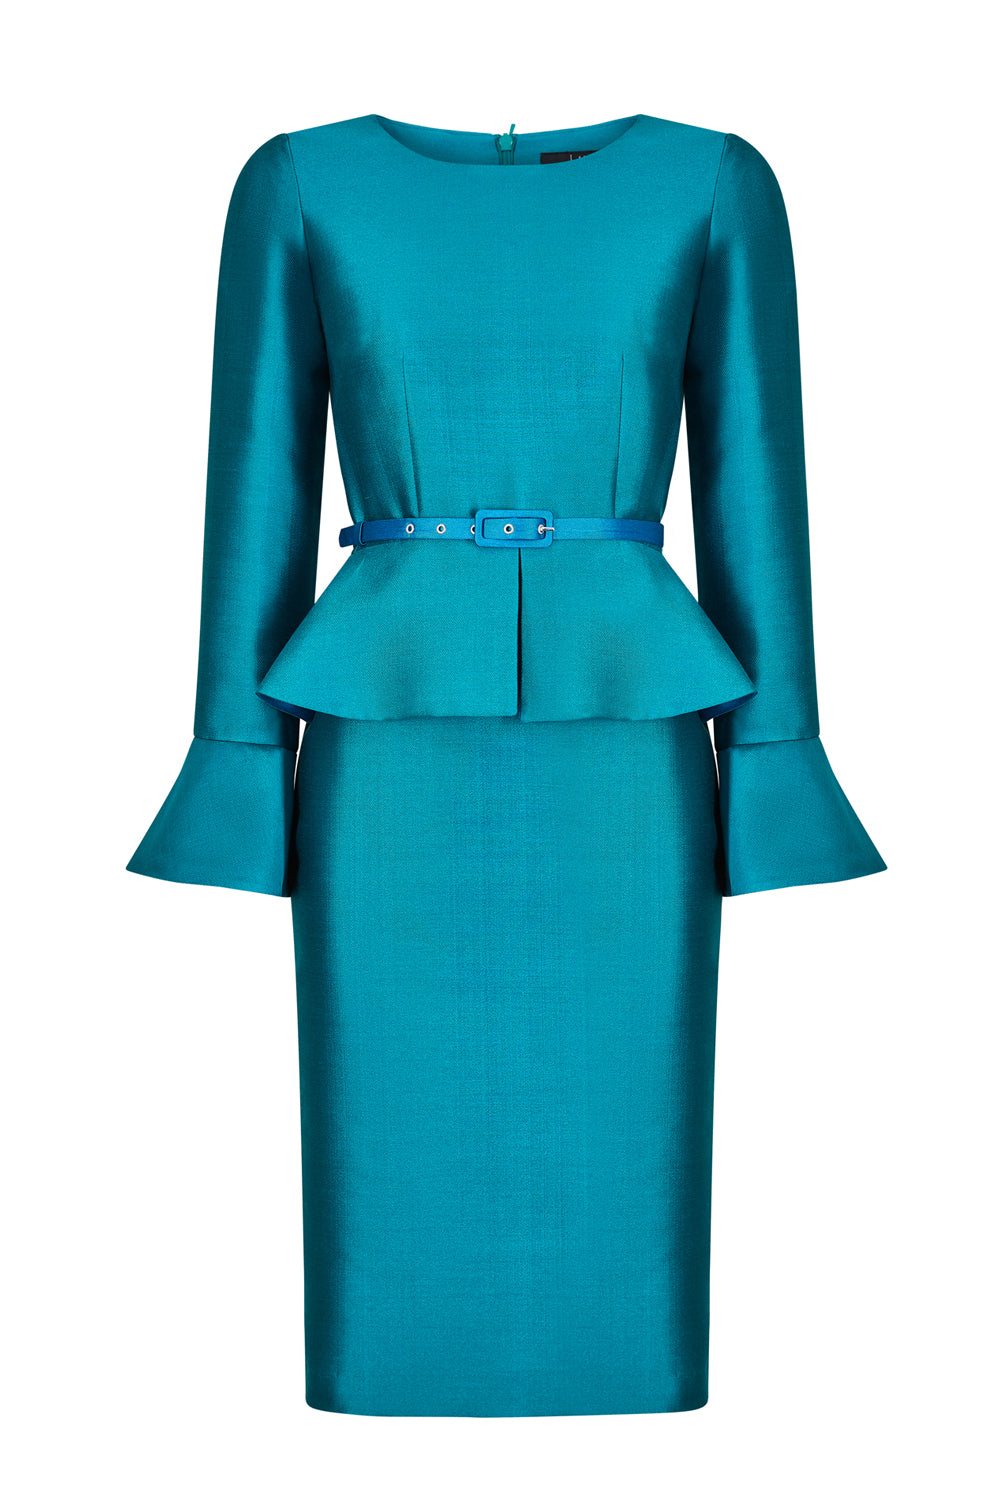 Emerald and Teal Silk Peplum Dress with Fluted Cuffs - Catherine